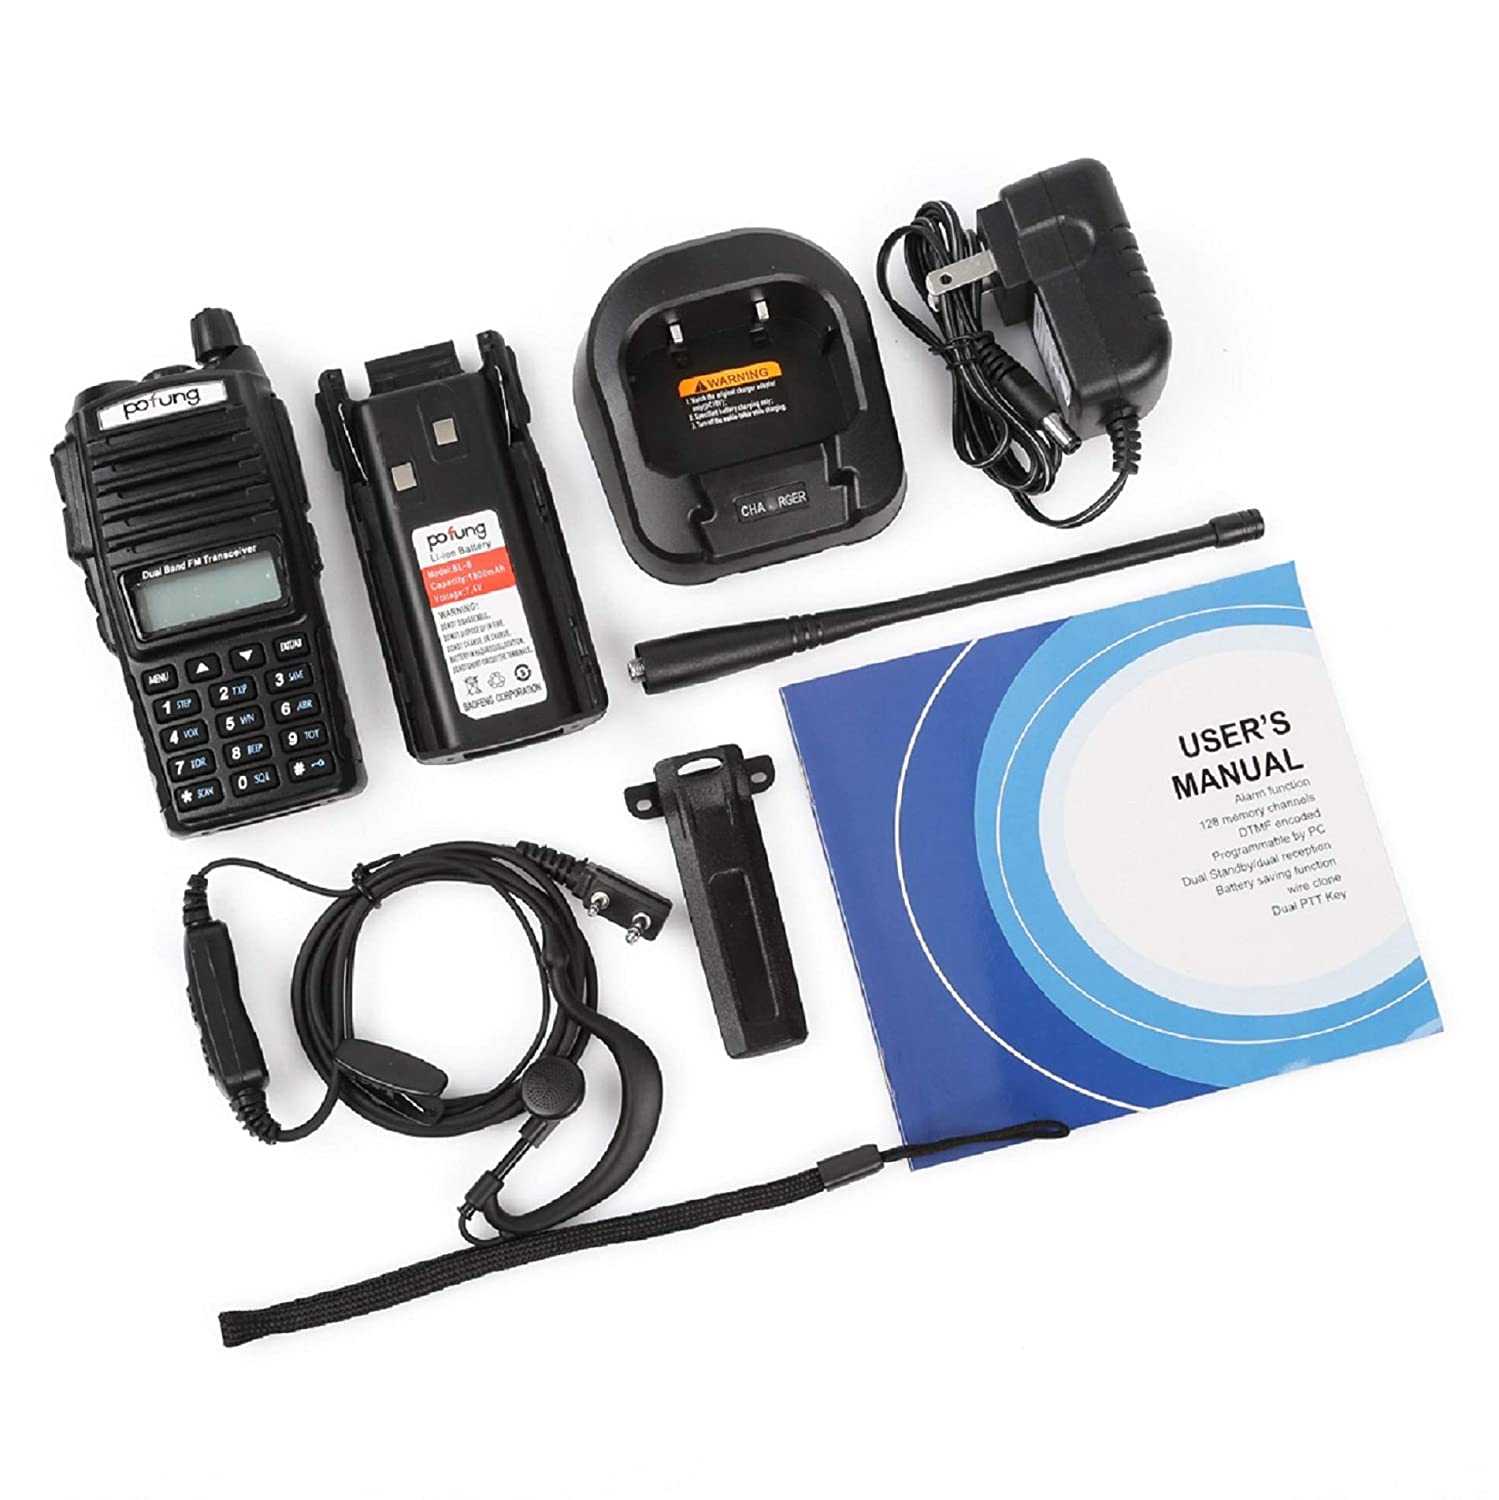 Pofung UV-82 VHF UHF FM Transceiver Dual Band Two Way Radio